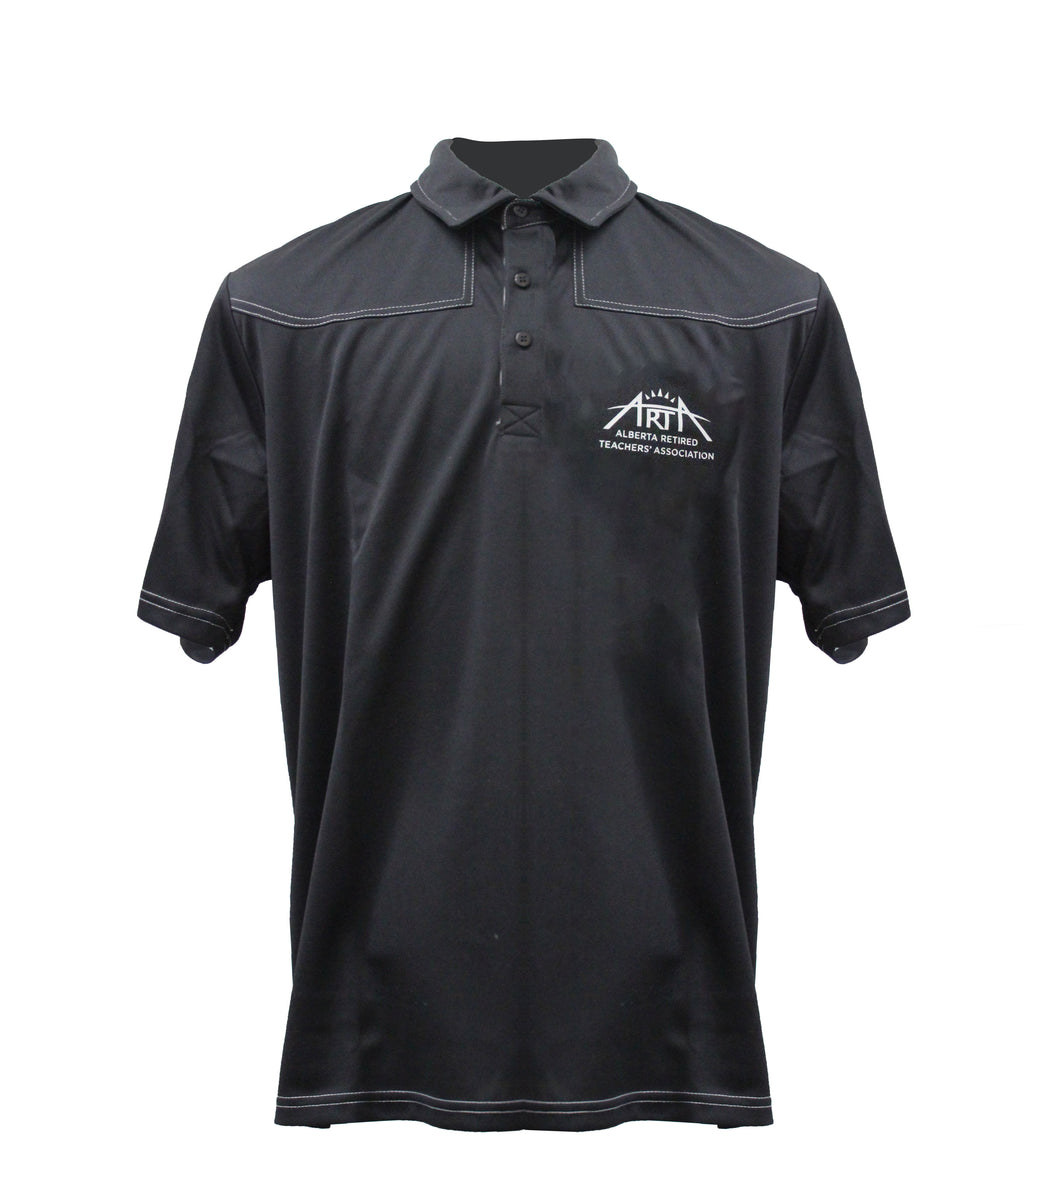 ARTA Branded Black Golf Shirt- Men's